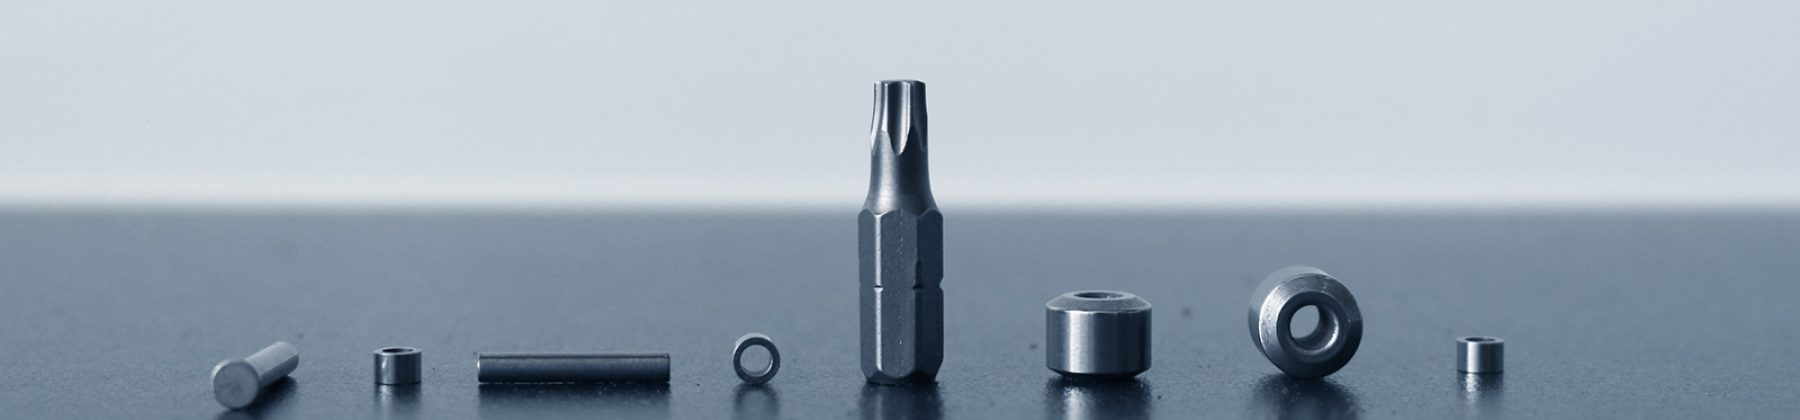 coating_components_quality_iwis_chromium_nitride_silver_grey_122